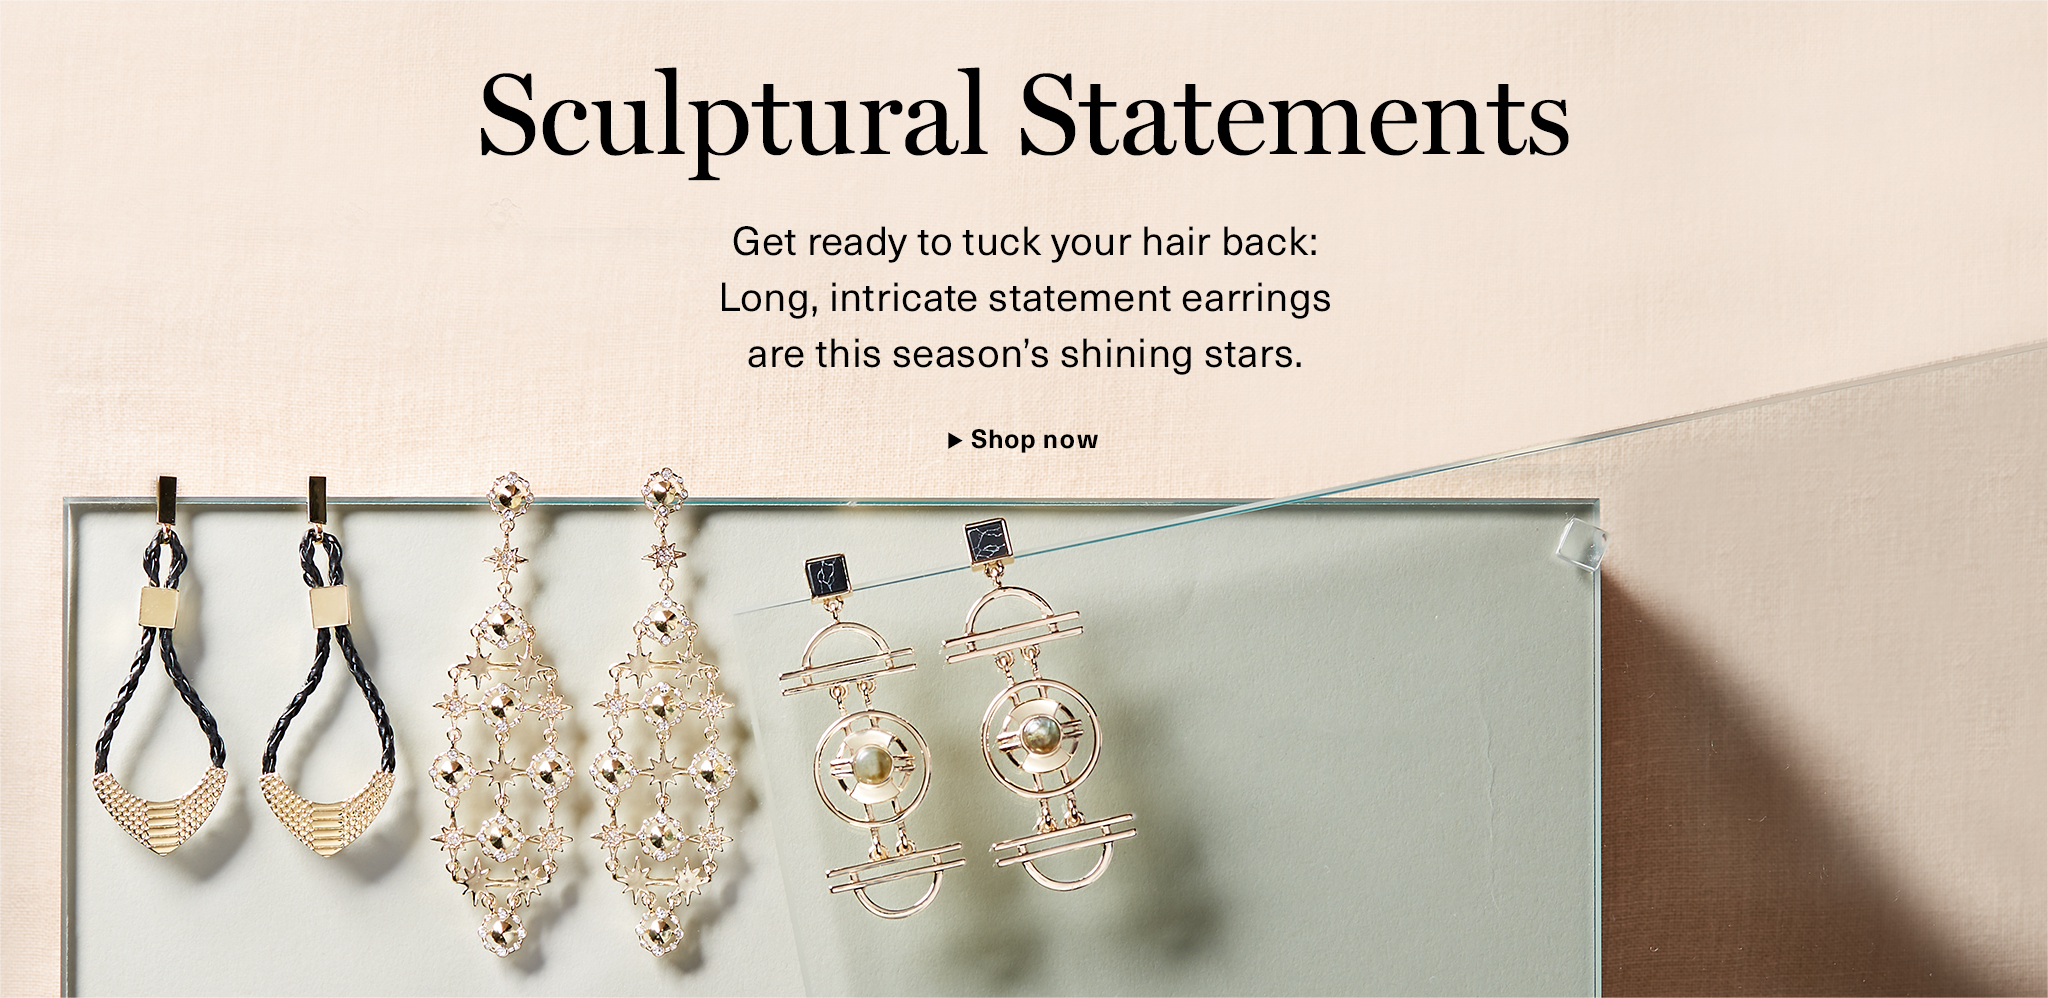 Sculptural Statements: Long intricate earrings are this season's shining stars.